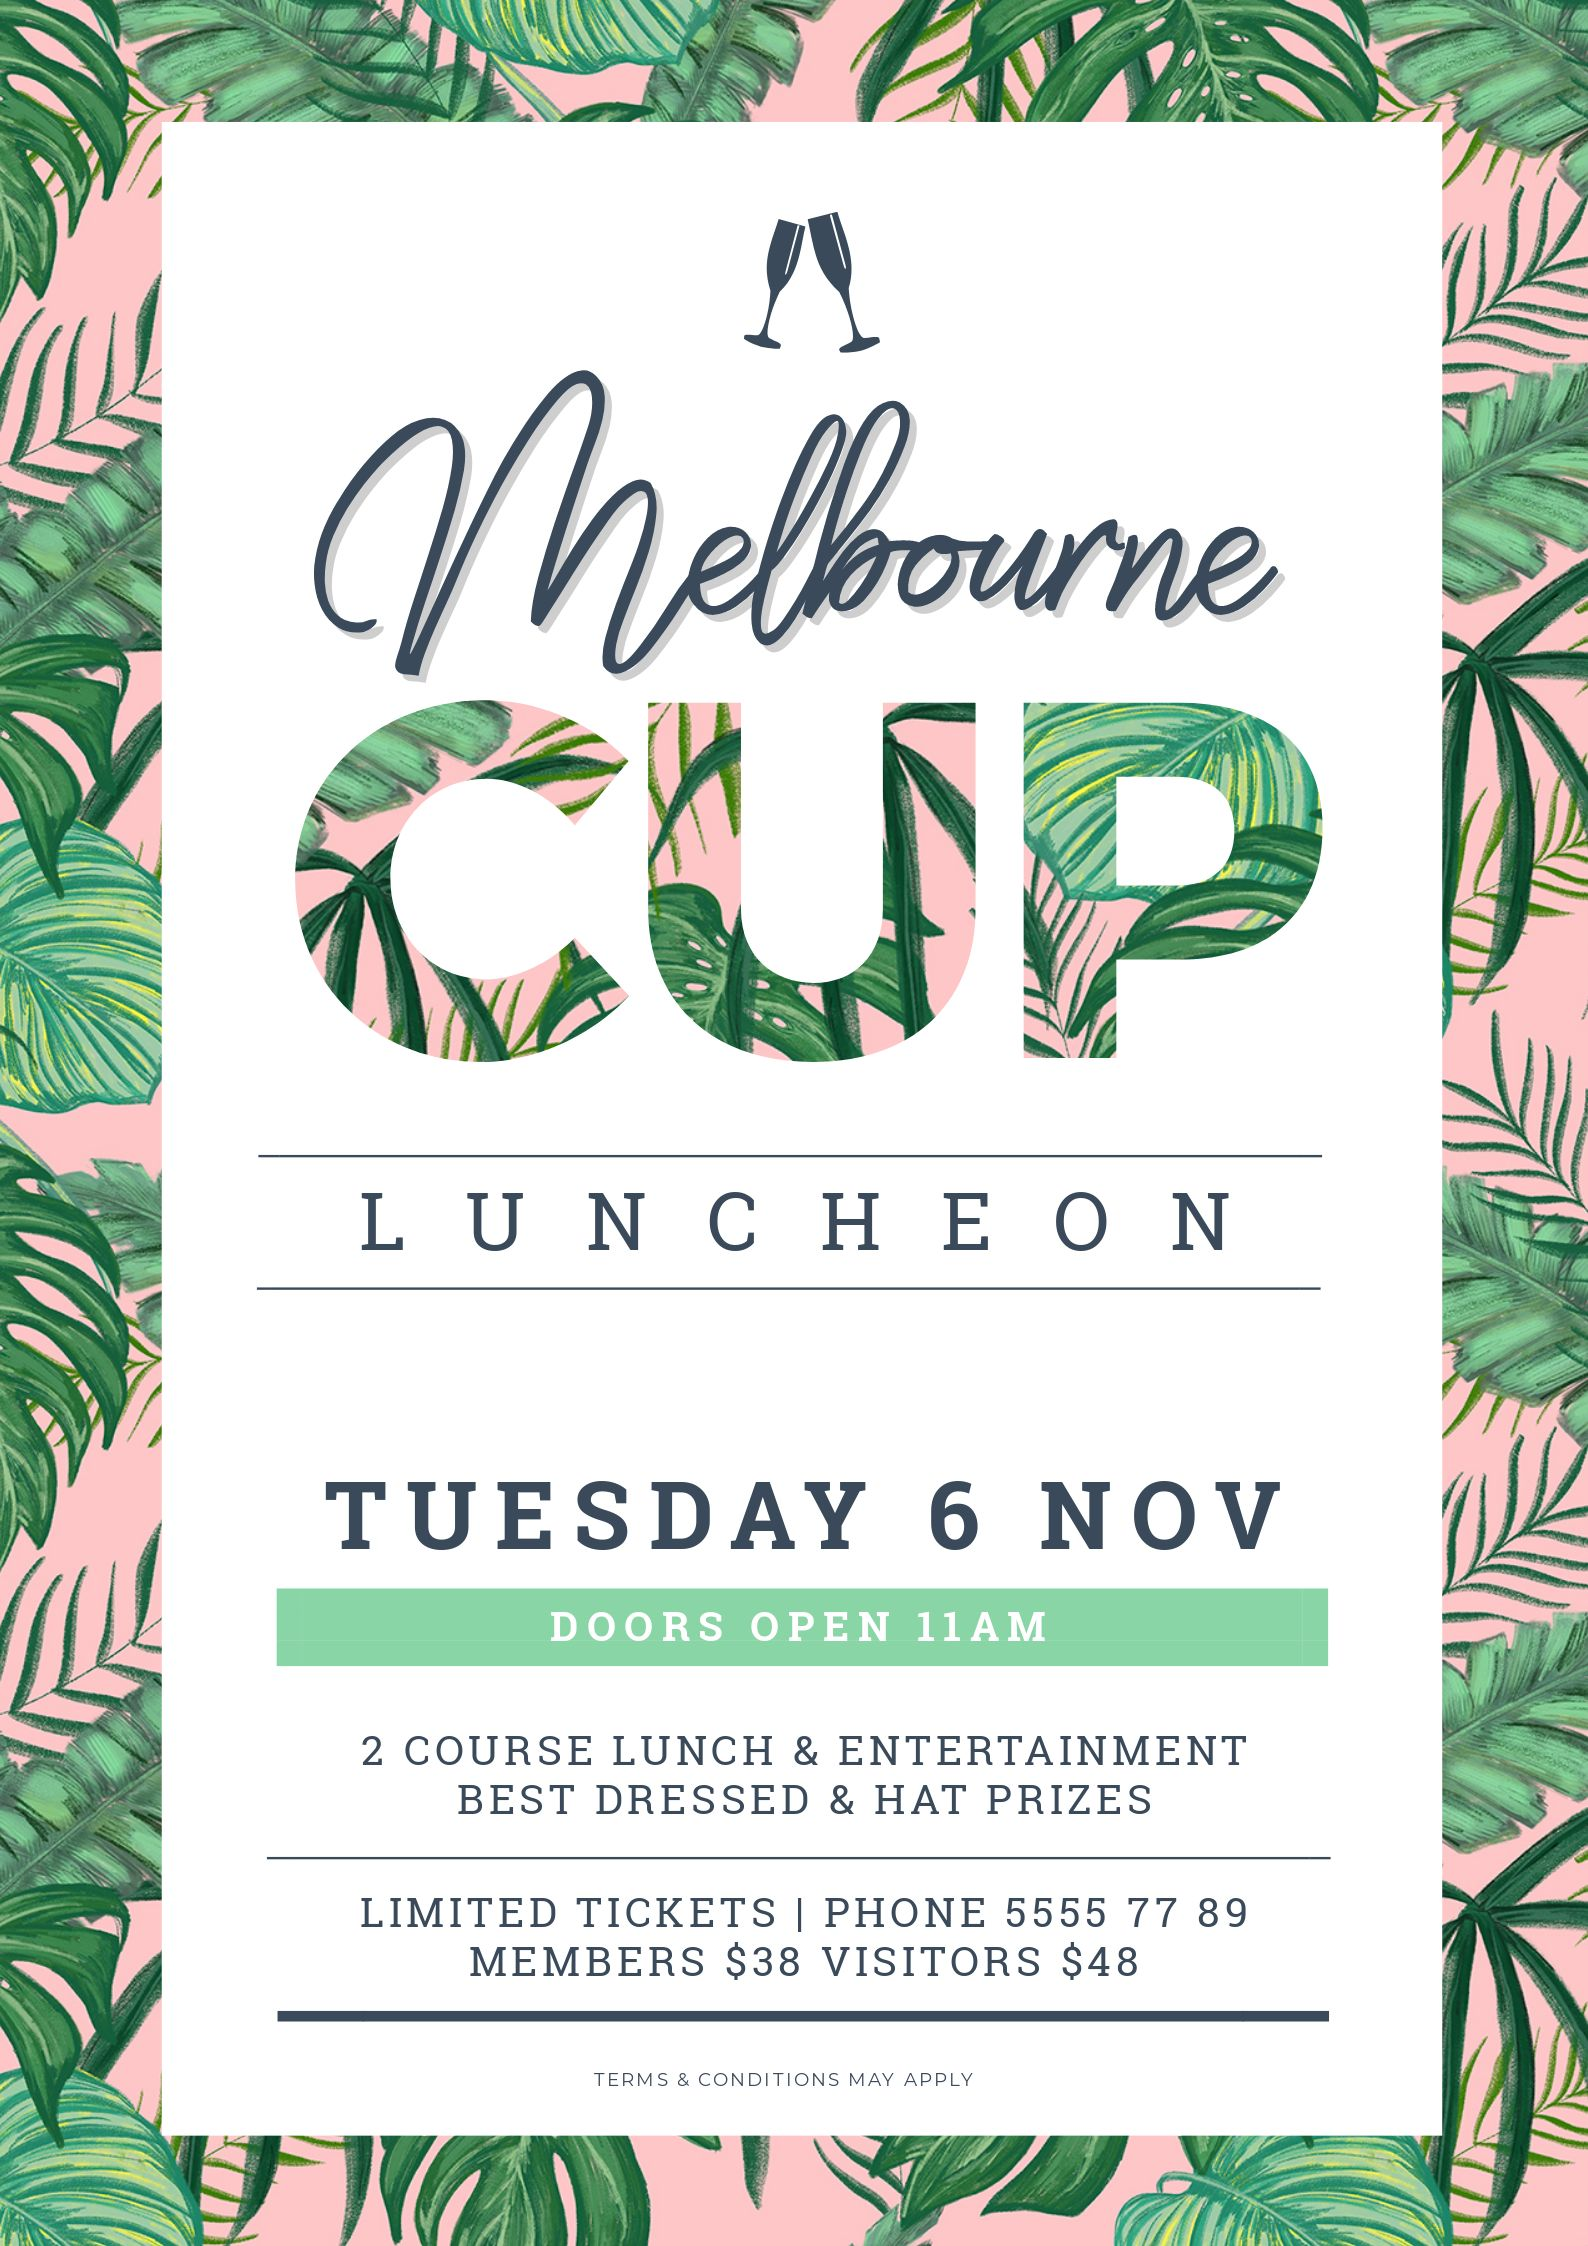 Melbourne Cup Poster Design using Text Mask (Image in Text) style. Image in Text Poster Designs 10 Ways - Hack Your Visual Design Series